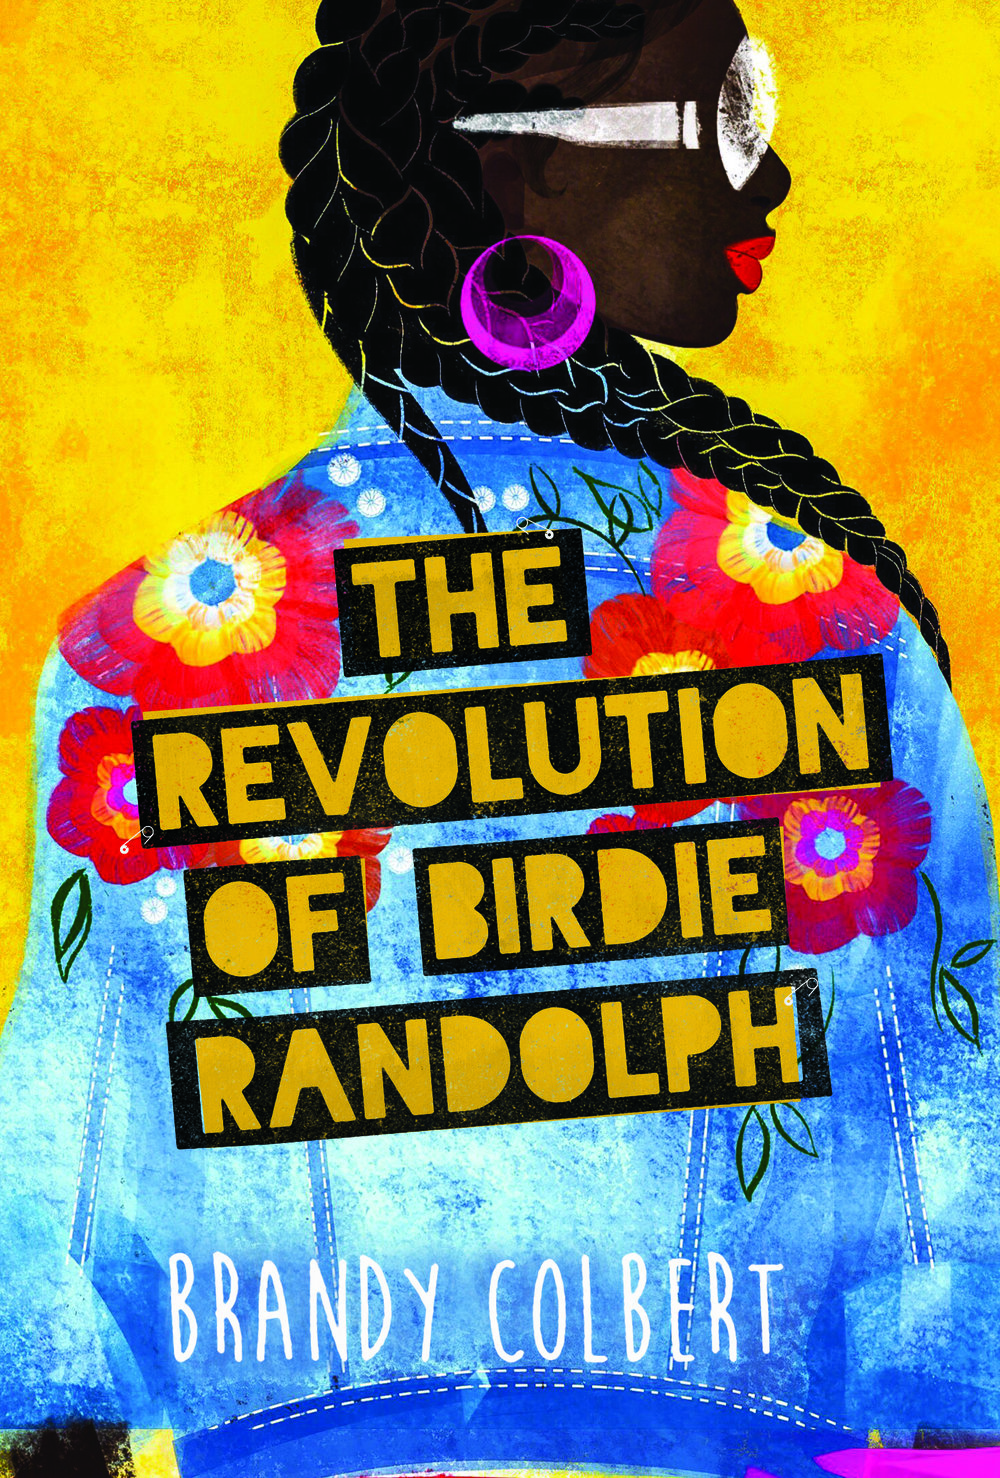 The Revolution of Birdie Randolph by Brandy Colbert | Superior Young Adult Fiction | Book Review